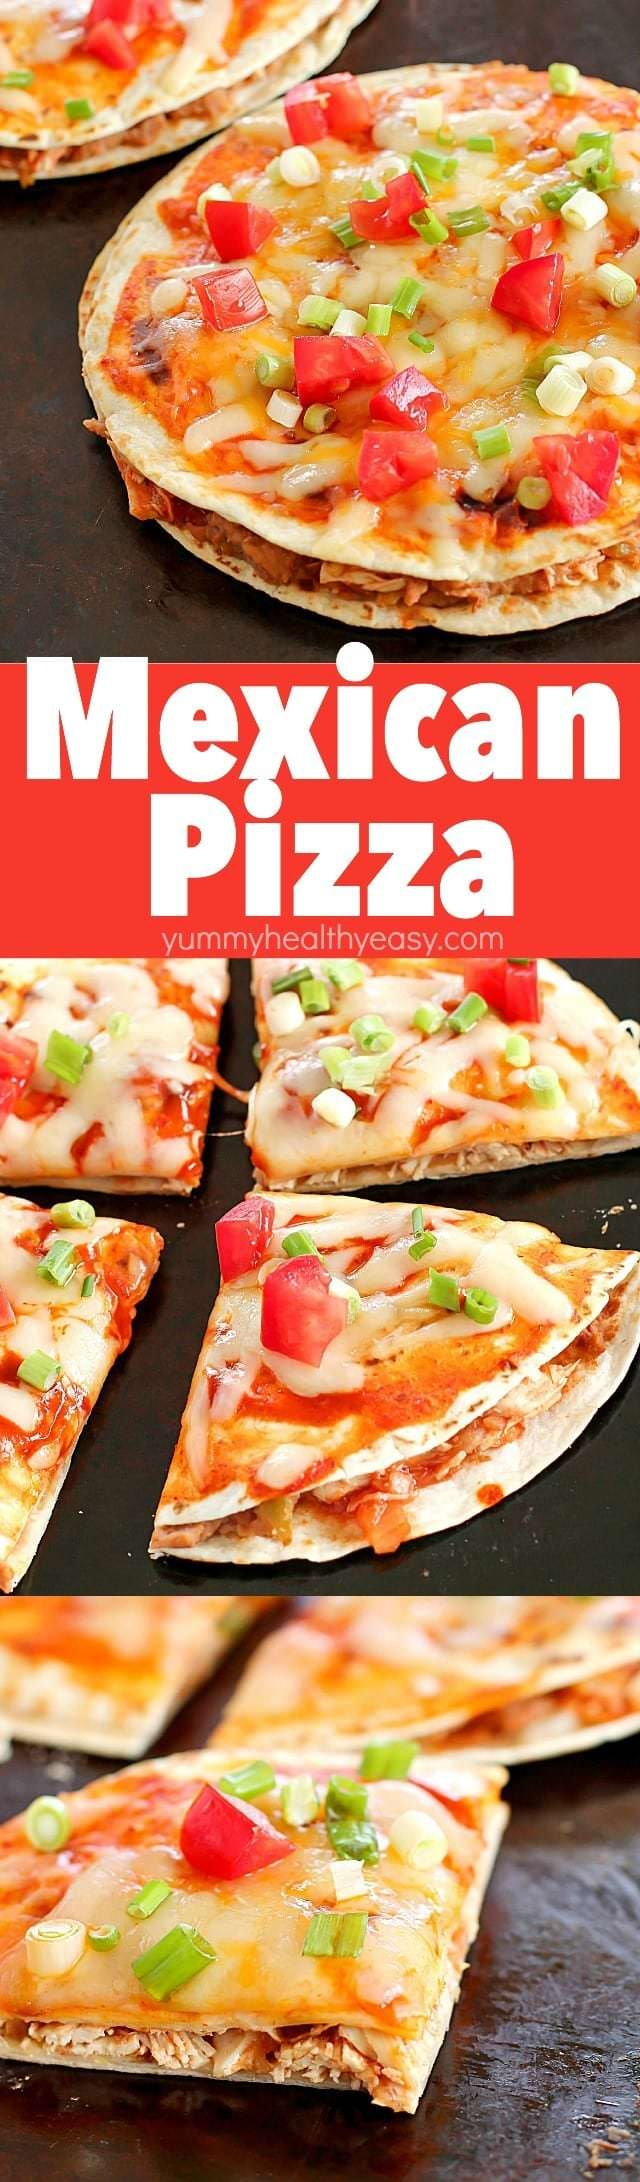 Mexican Pizza is the quickest, easiest dinner idea the whole family will love!